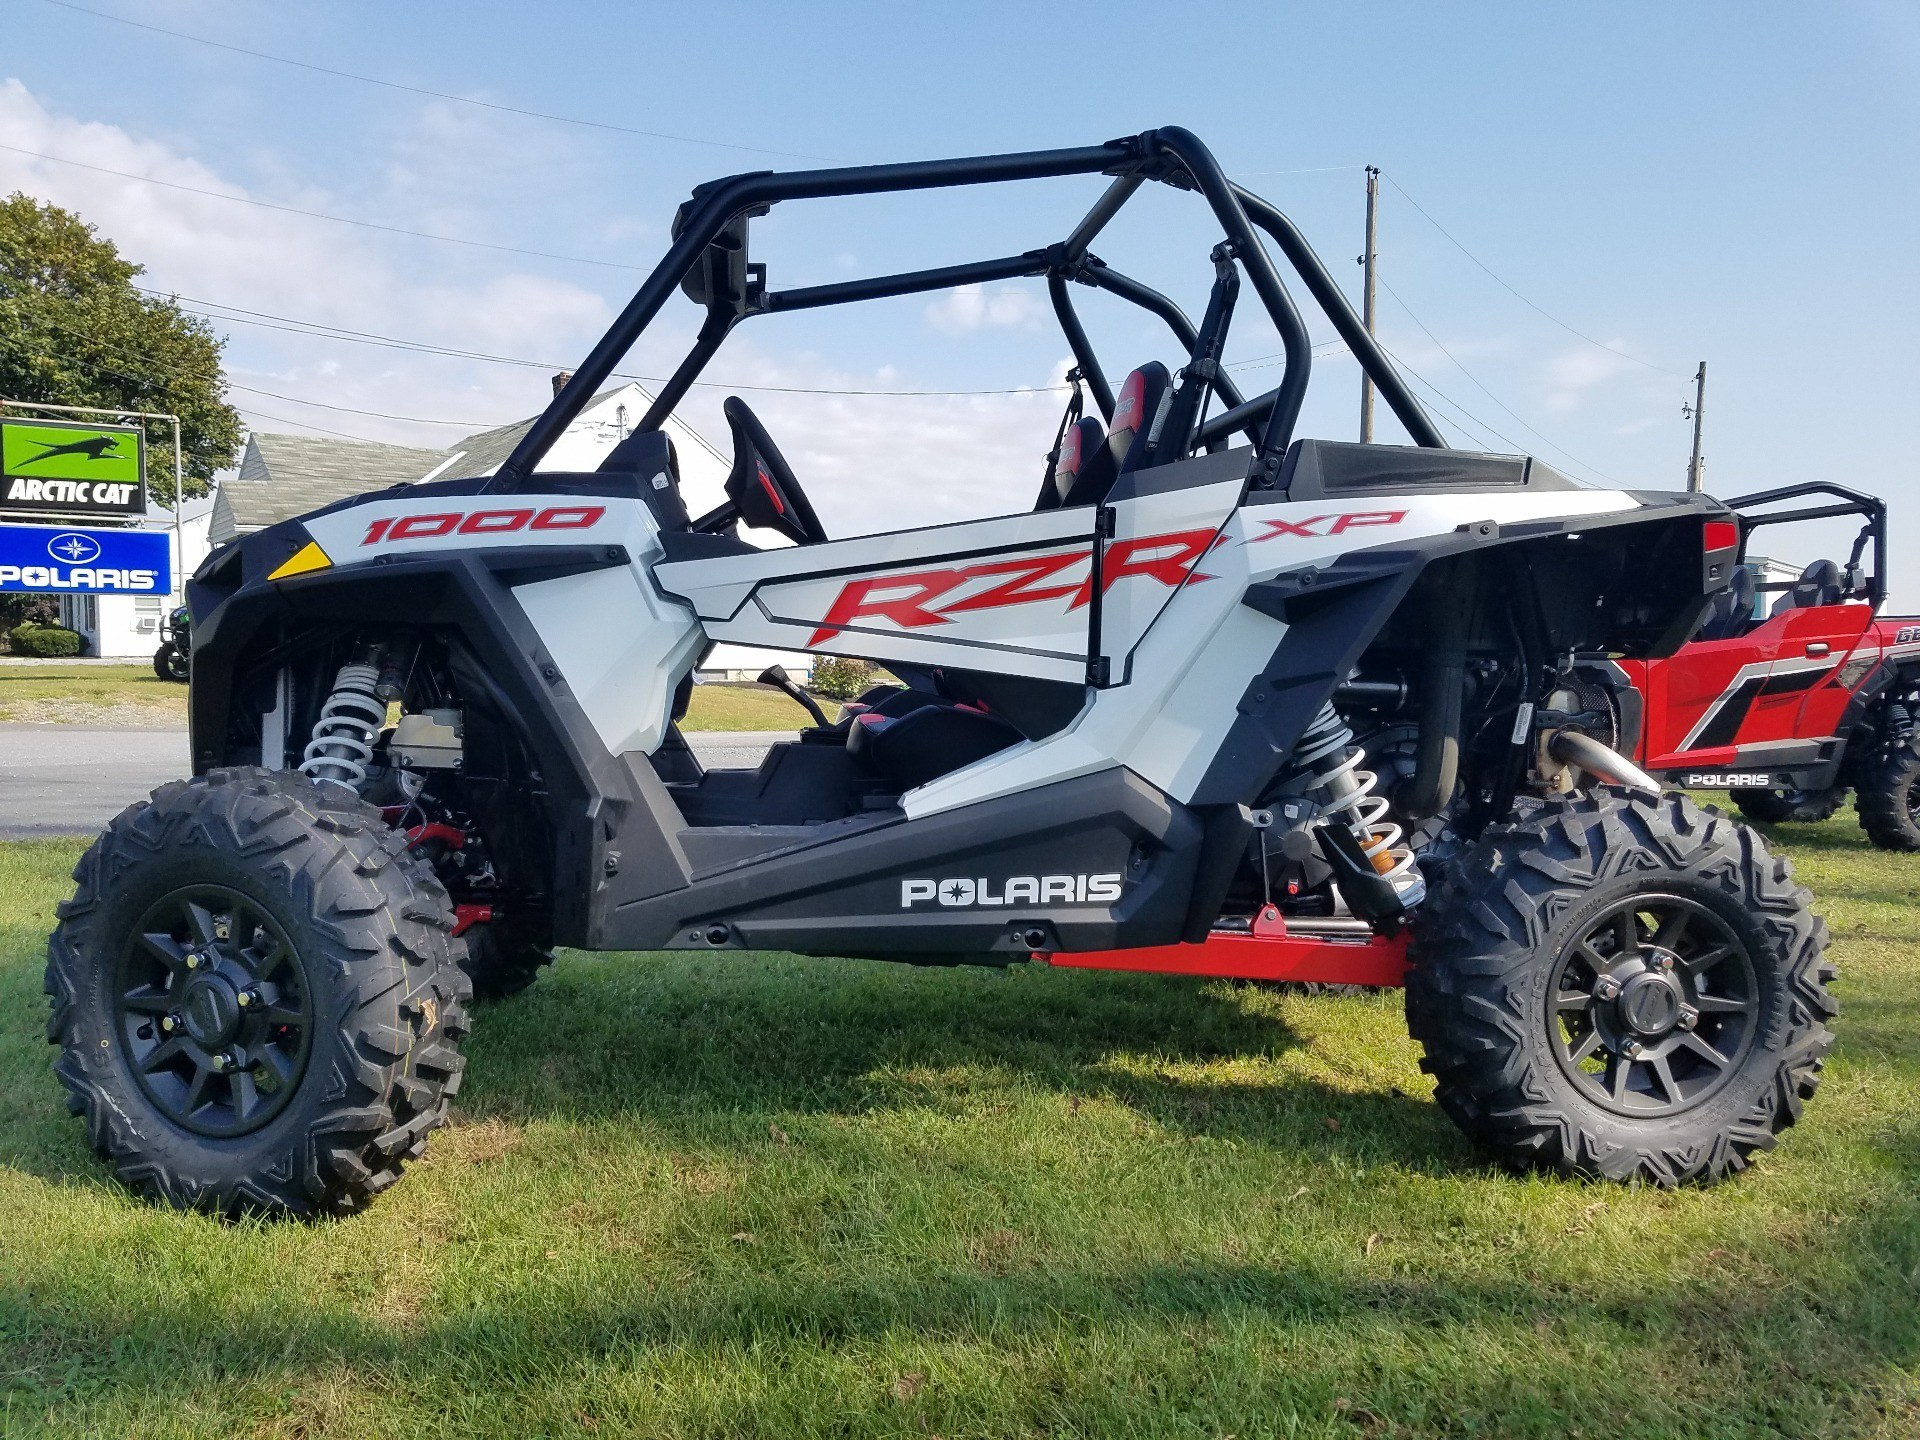 2020 Polaris RZR XP 1000 in Annville, Pennsylvania - Photo 2